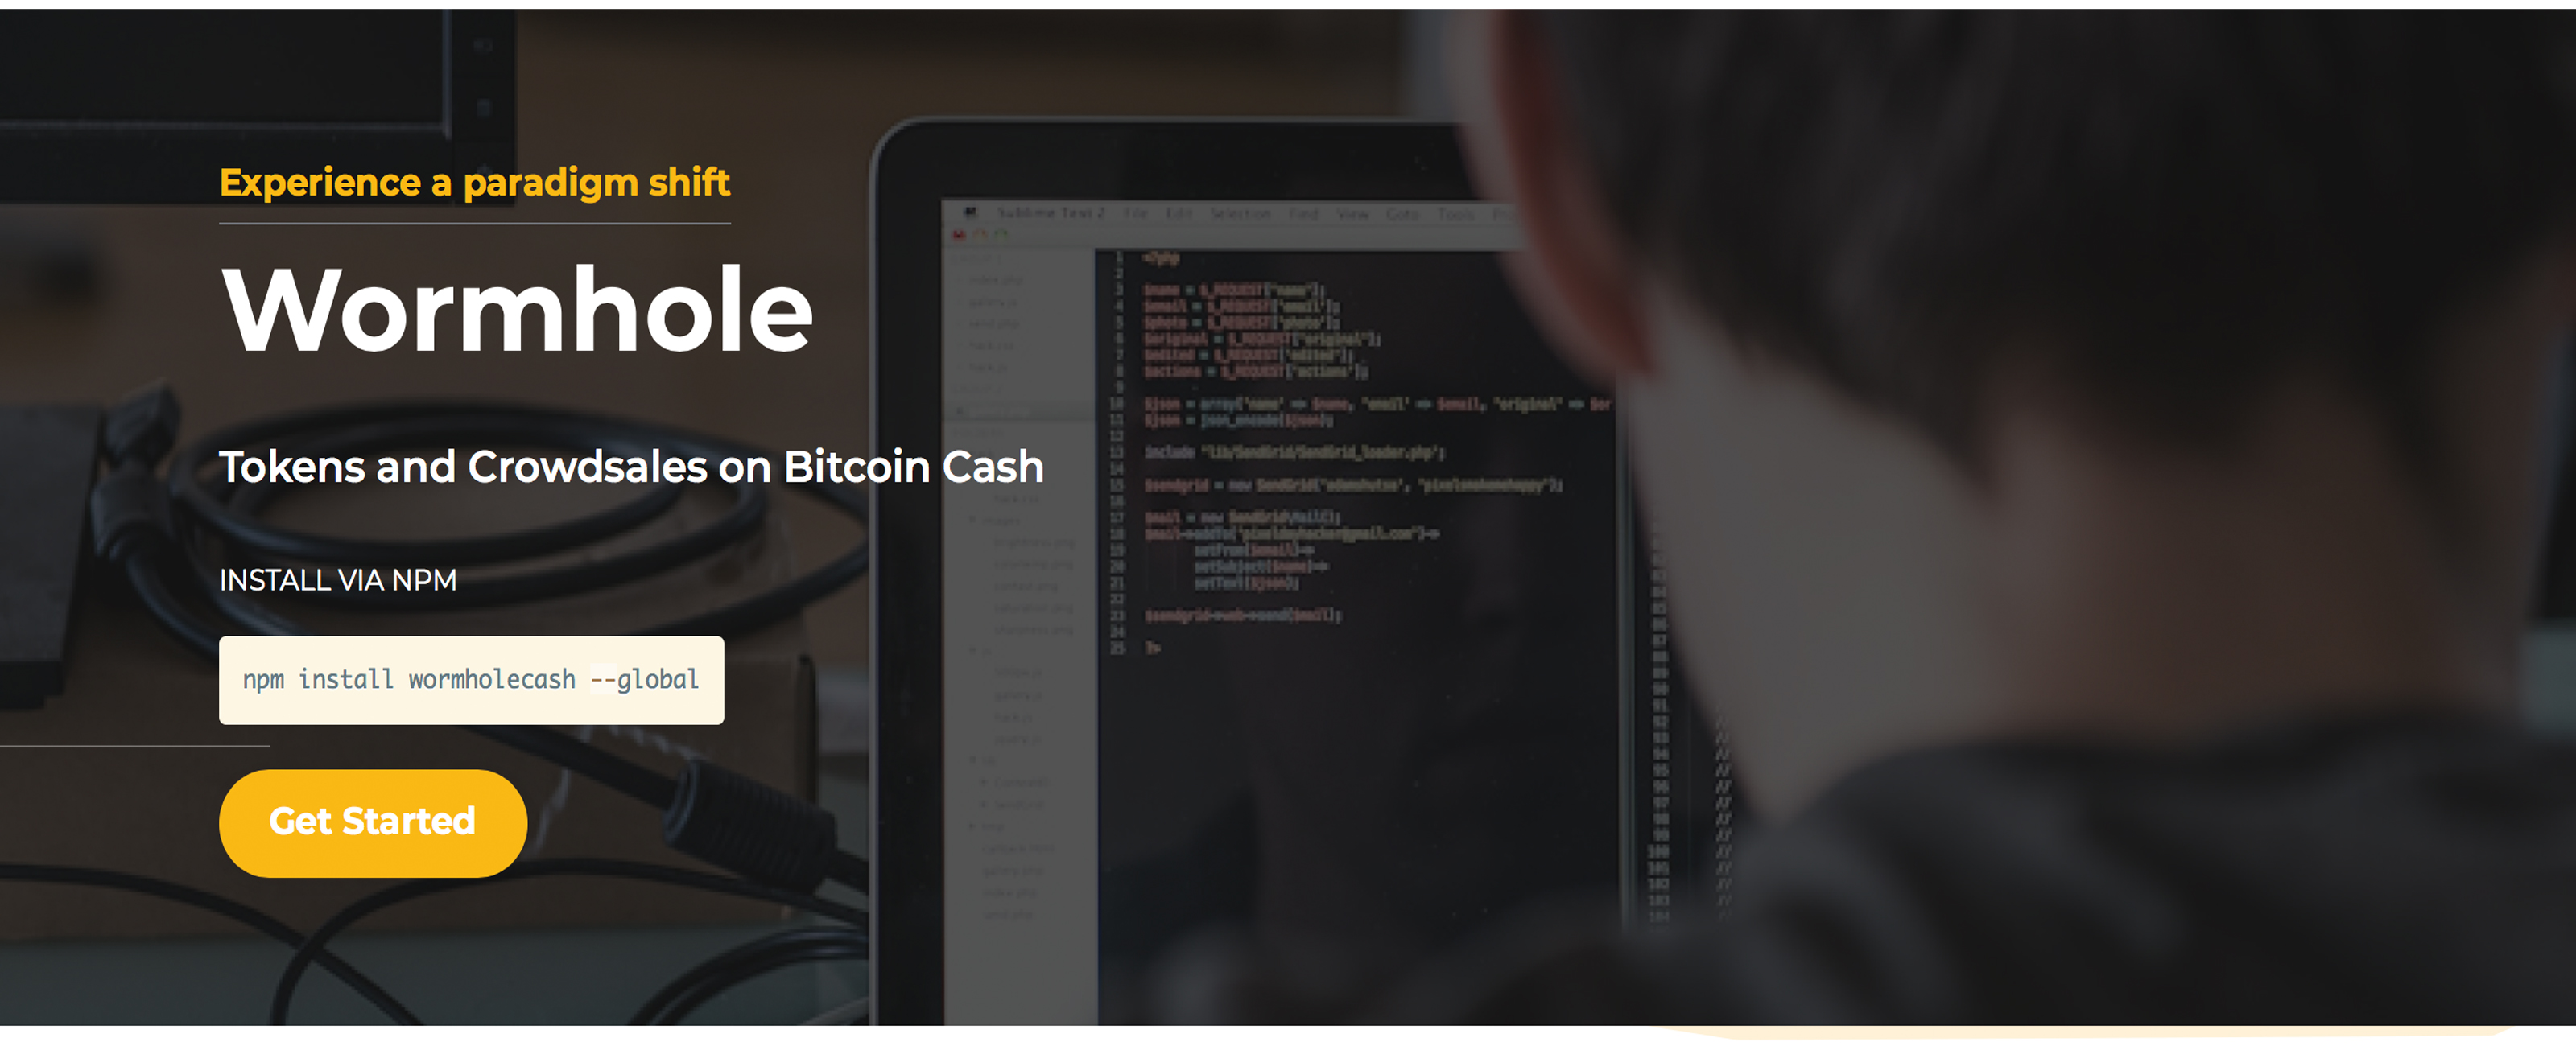 Wormhole Mainnet and Developers Guide Launched